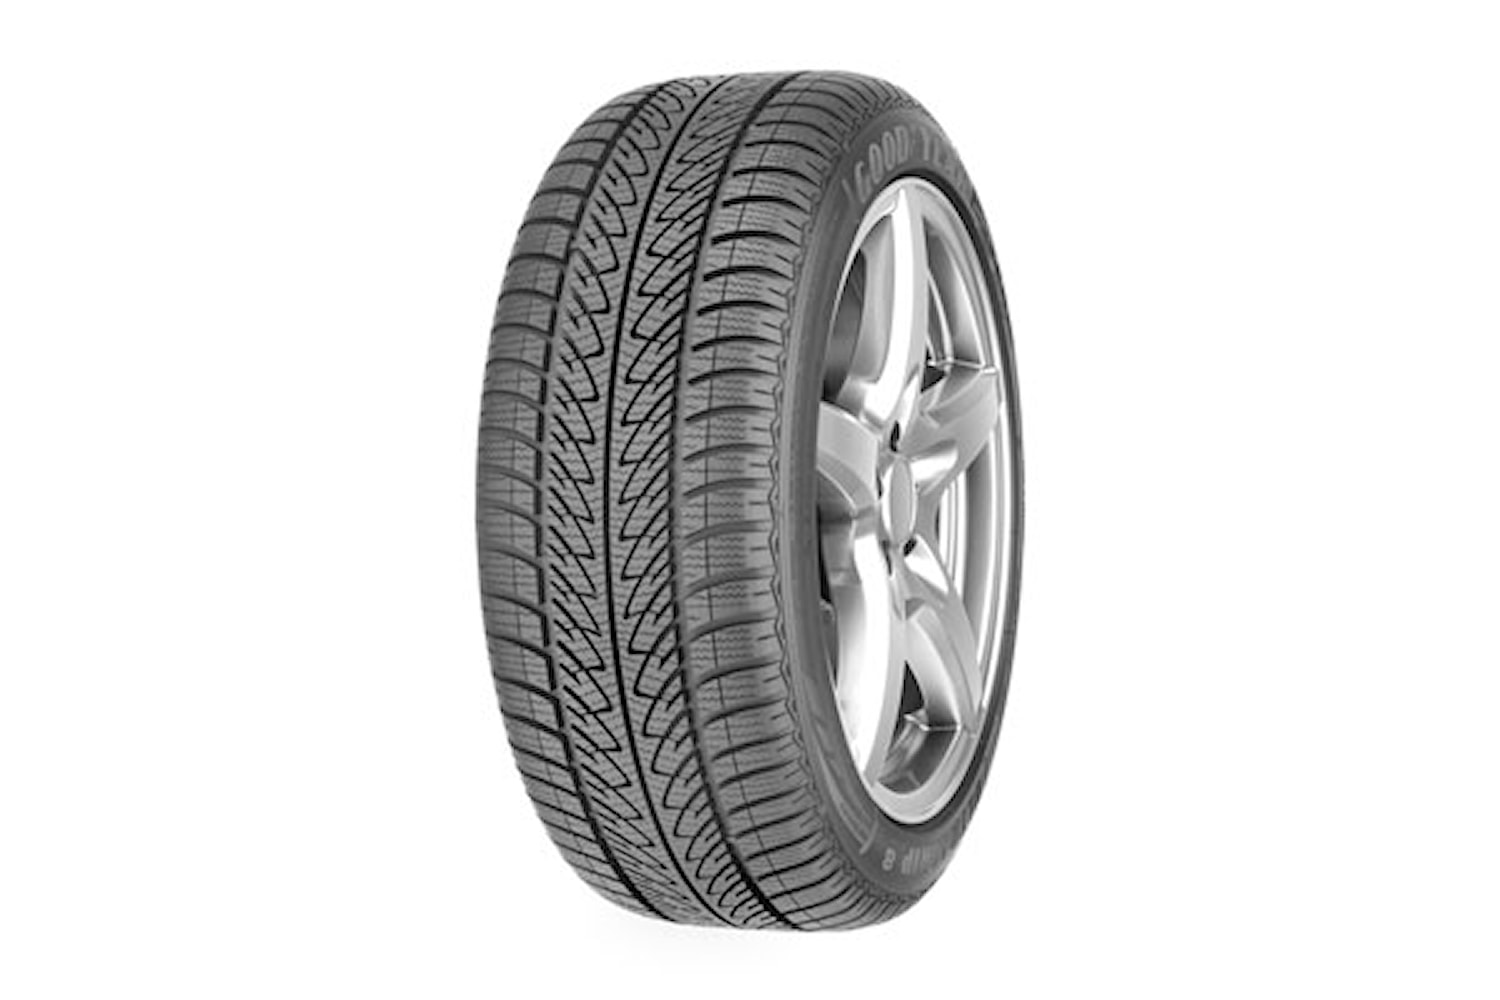 Goodyear UltraGrip 8 MS 99/97T